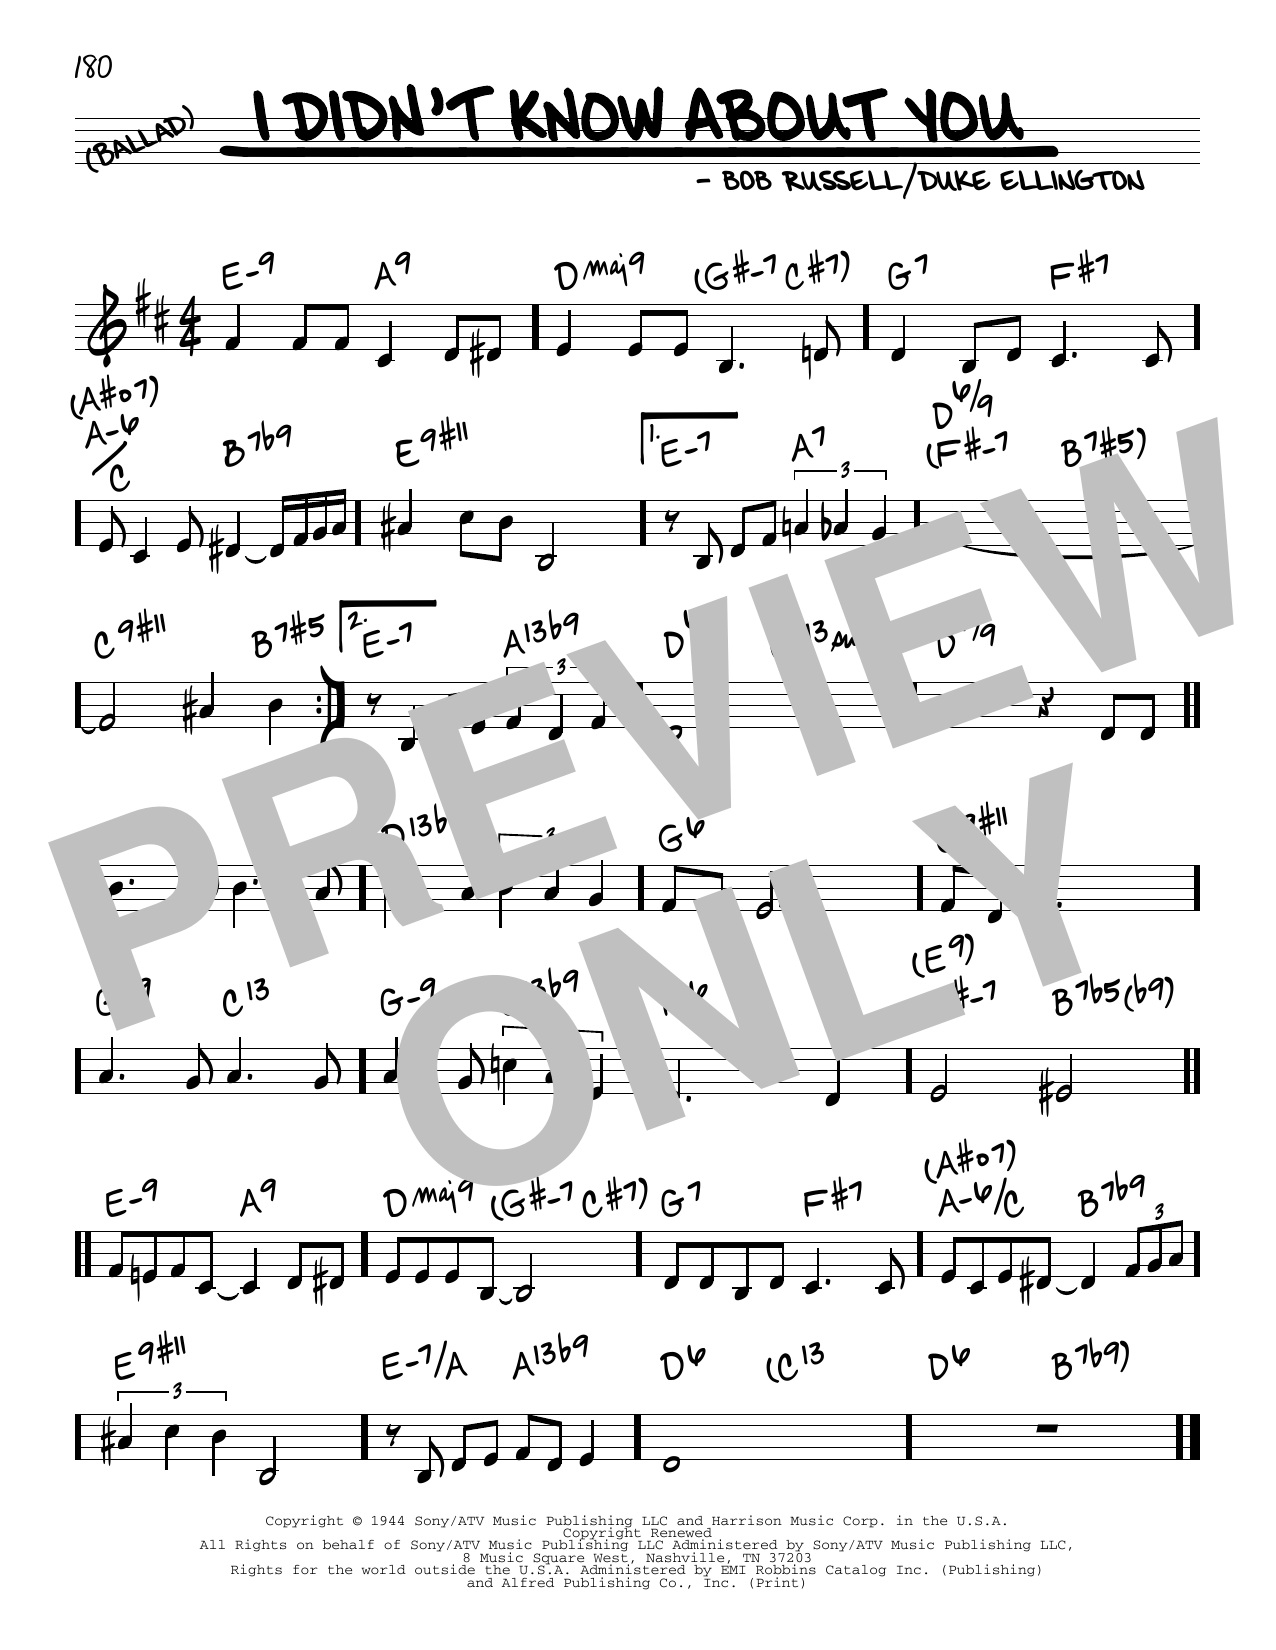 Duke Ellington I Didn't Know About You sheet music preview music notes and score for Guitar Tab including 2 page(s)